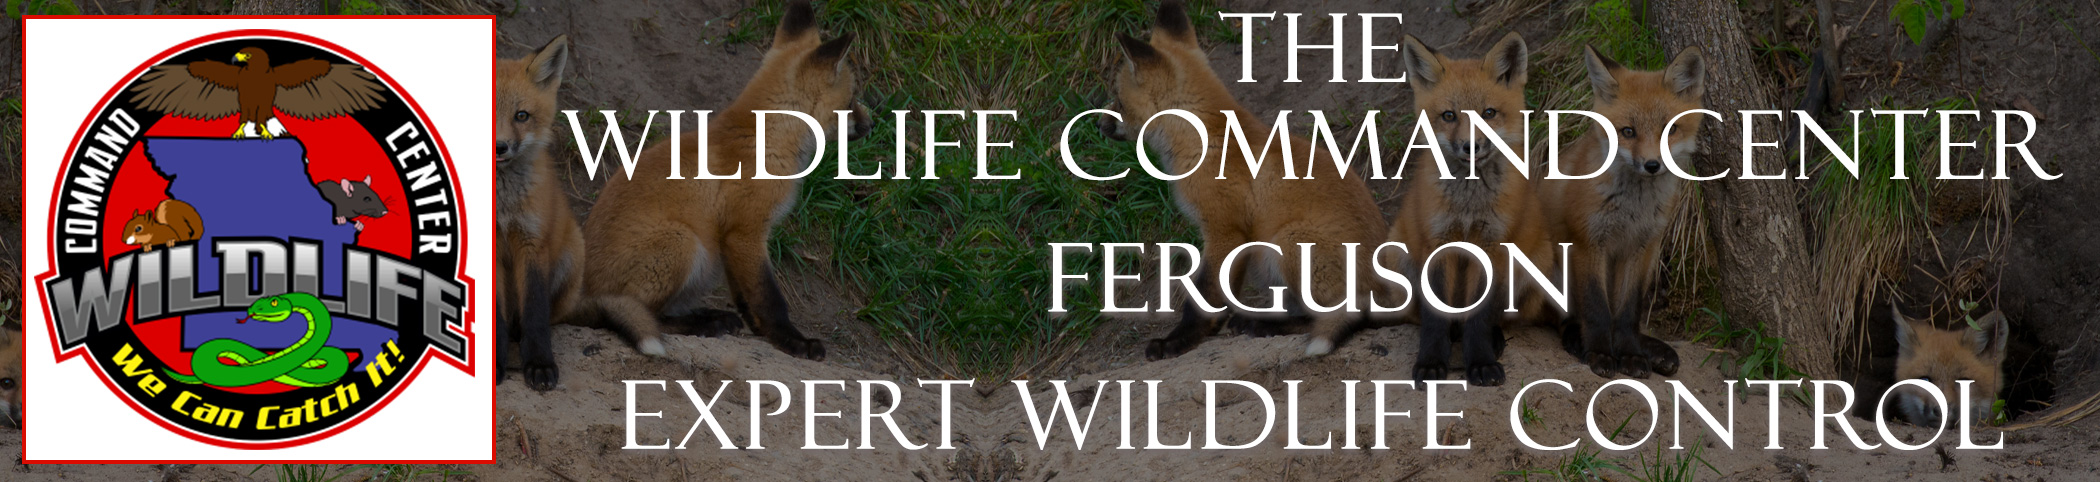 The Wildlife Command Center Ferguson Missouri Image